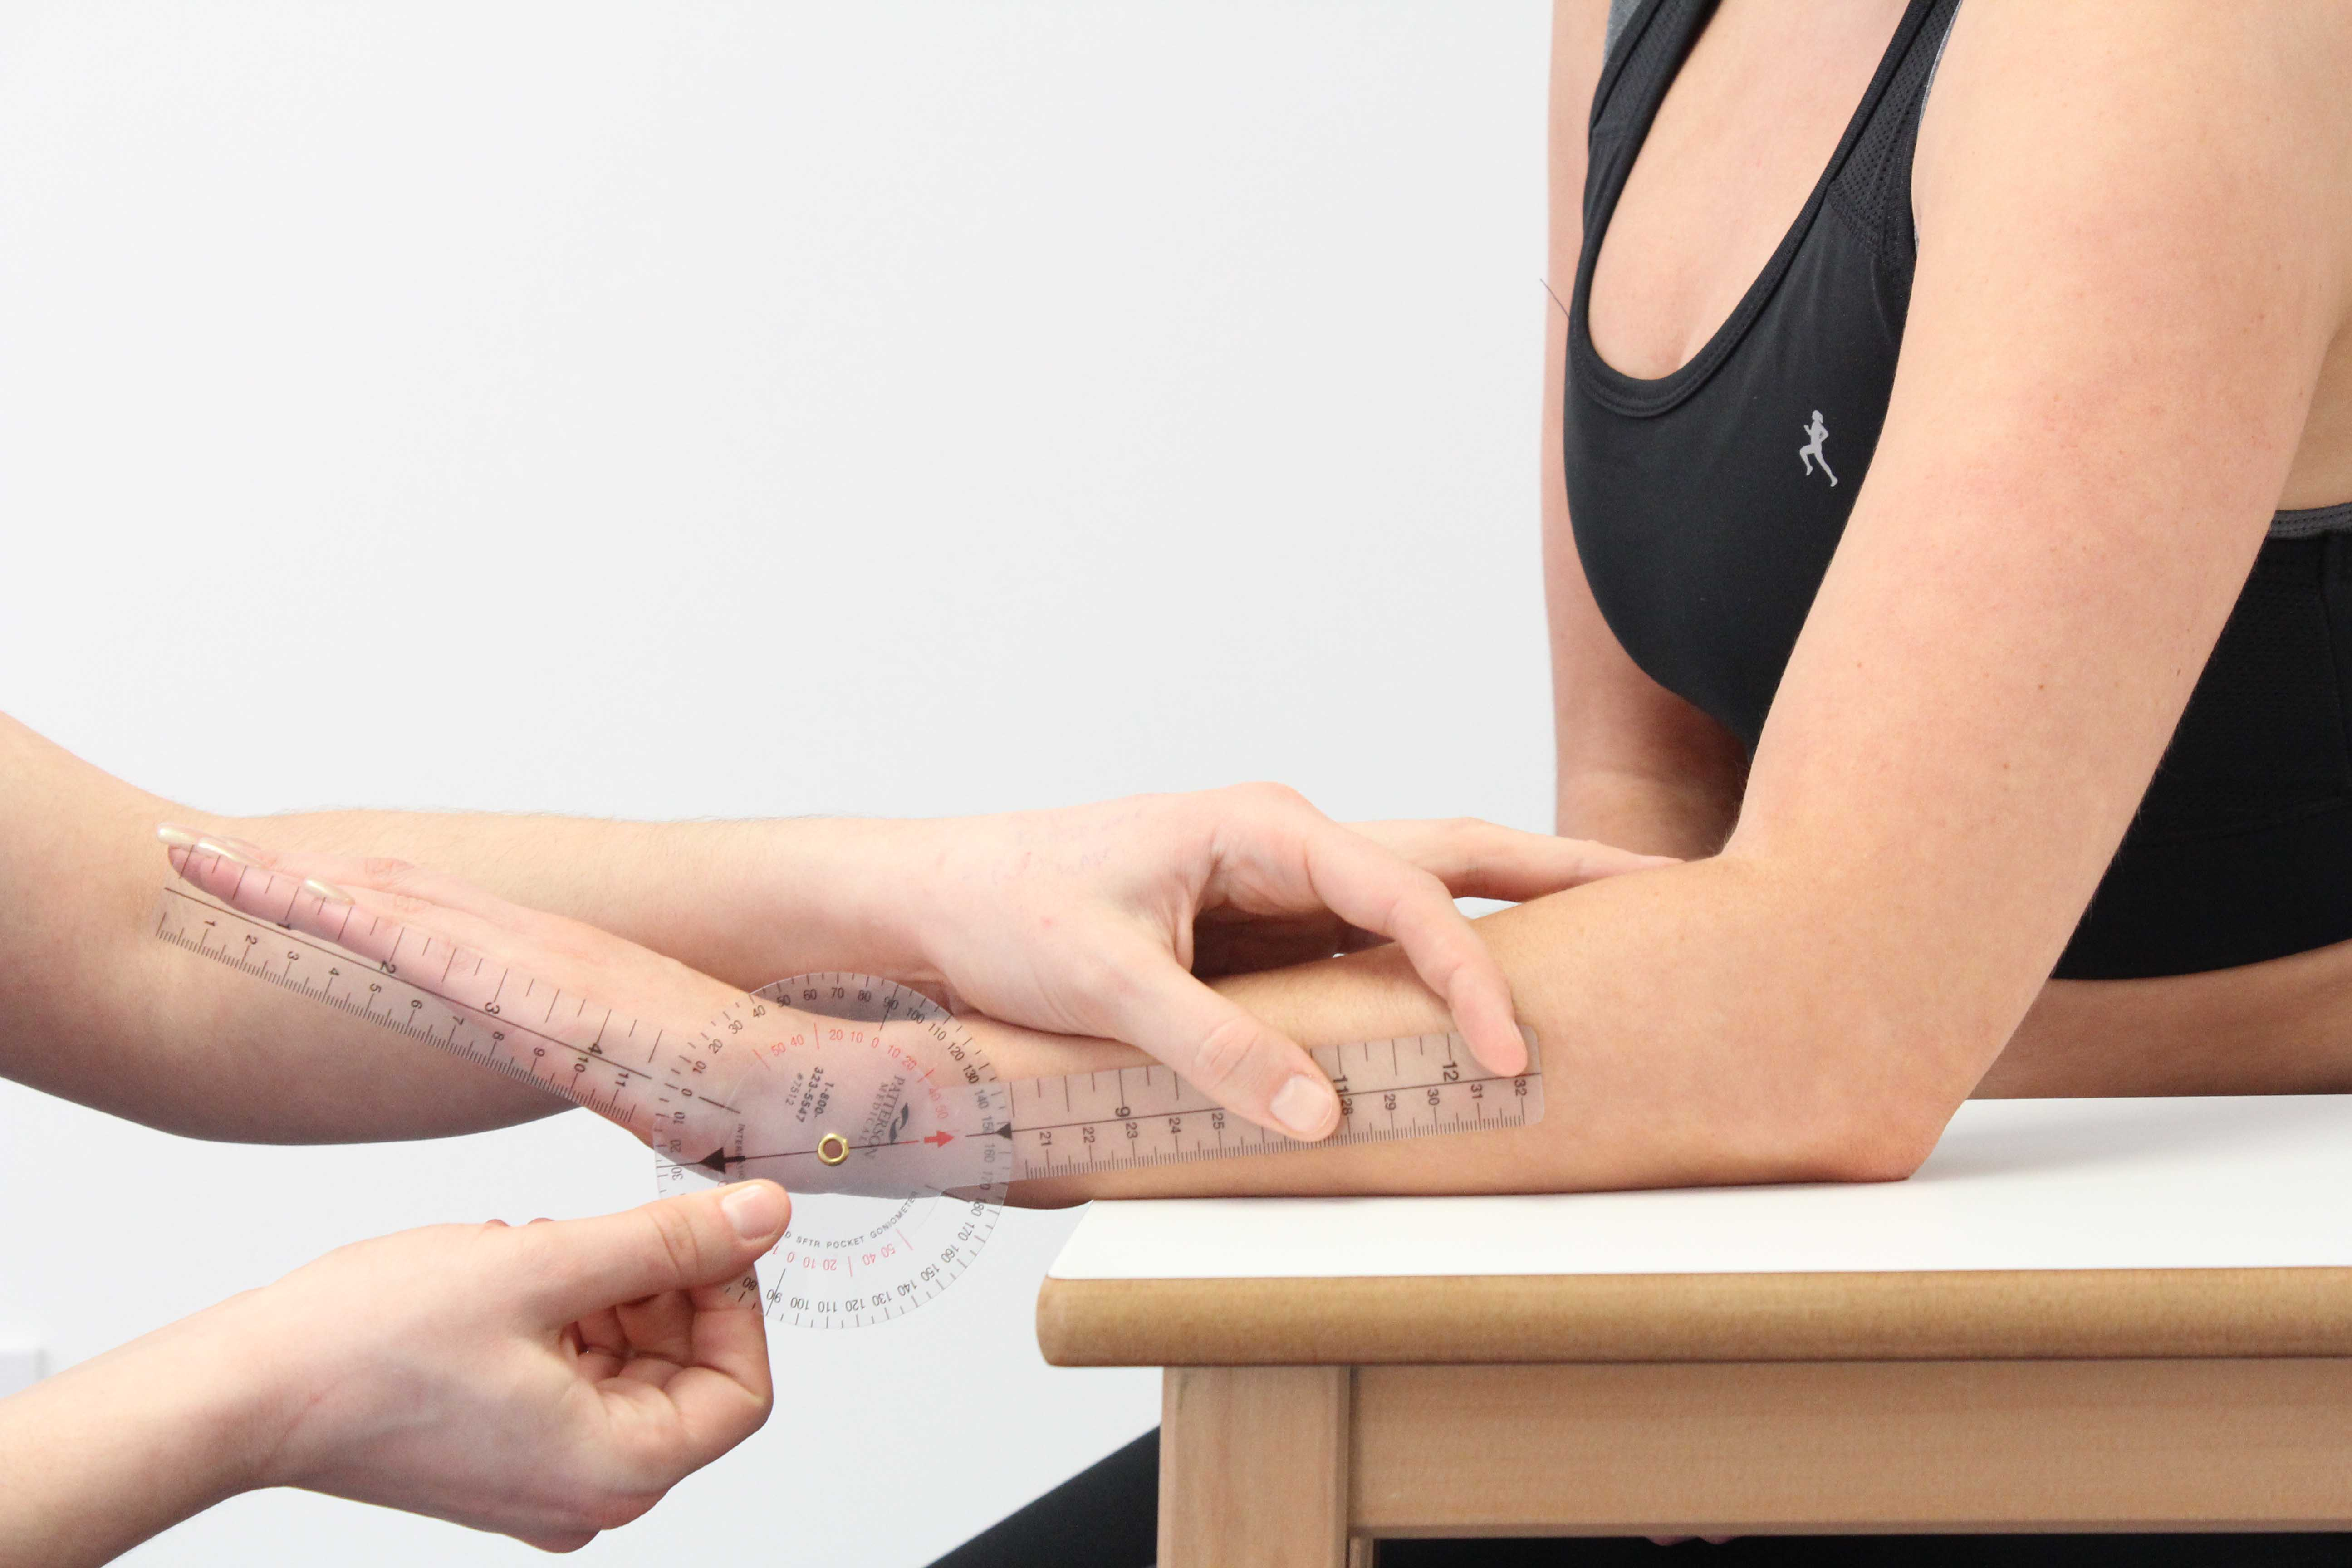 Therapist measuring wrist extension using a goniometer